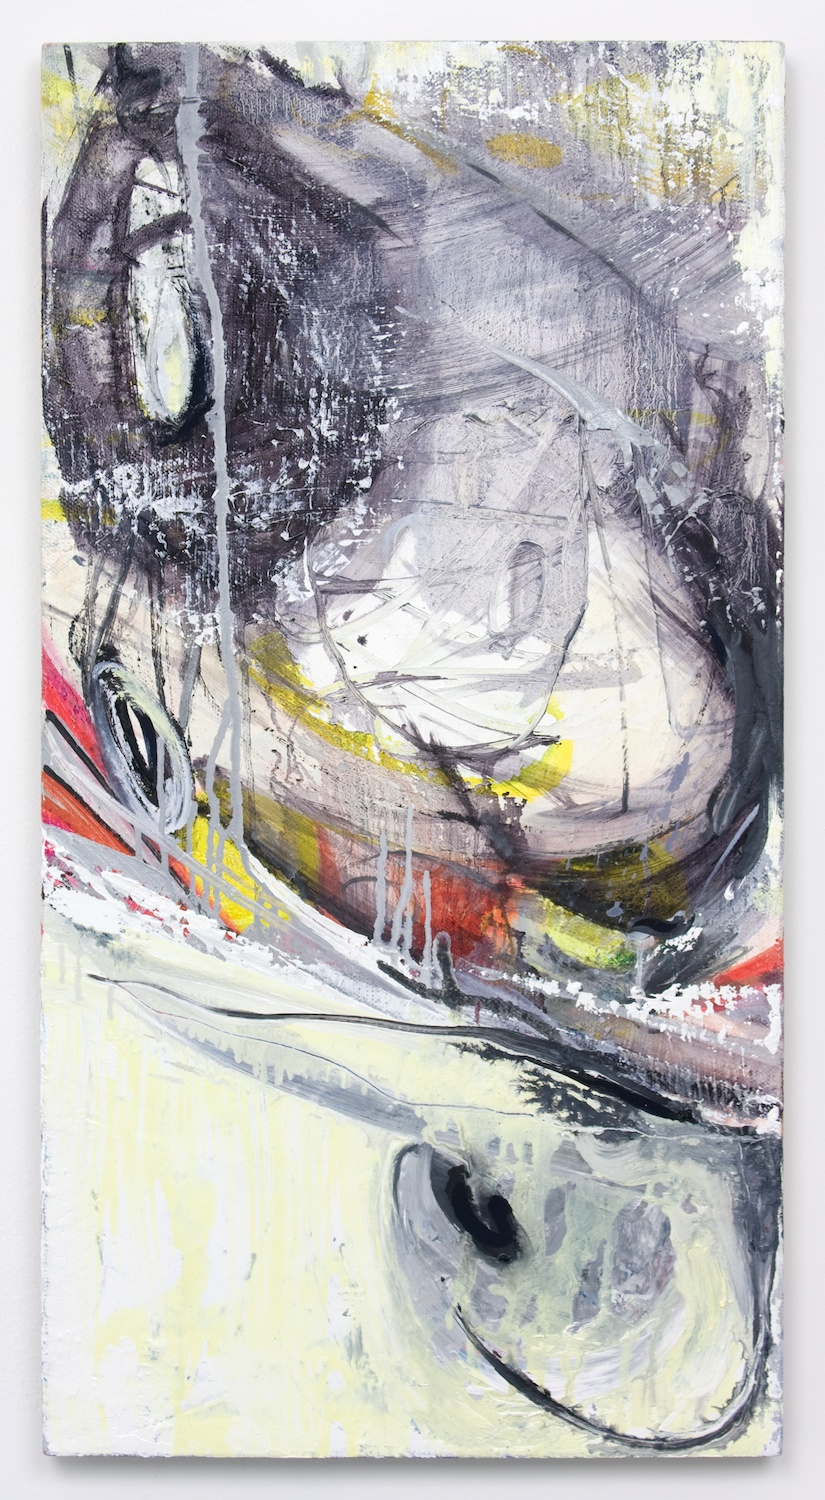 Suzanne McClelland  Vertical Dig  2010 Acrylic and oil on linen 36h x 19w in SM133